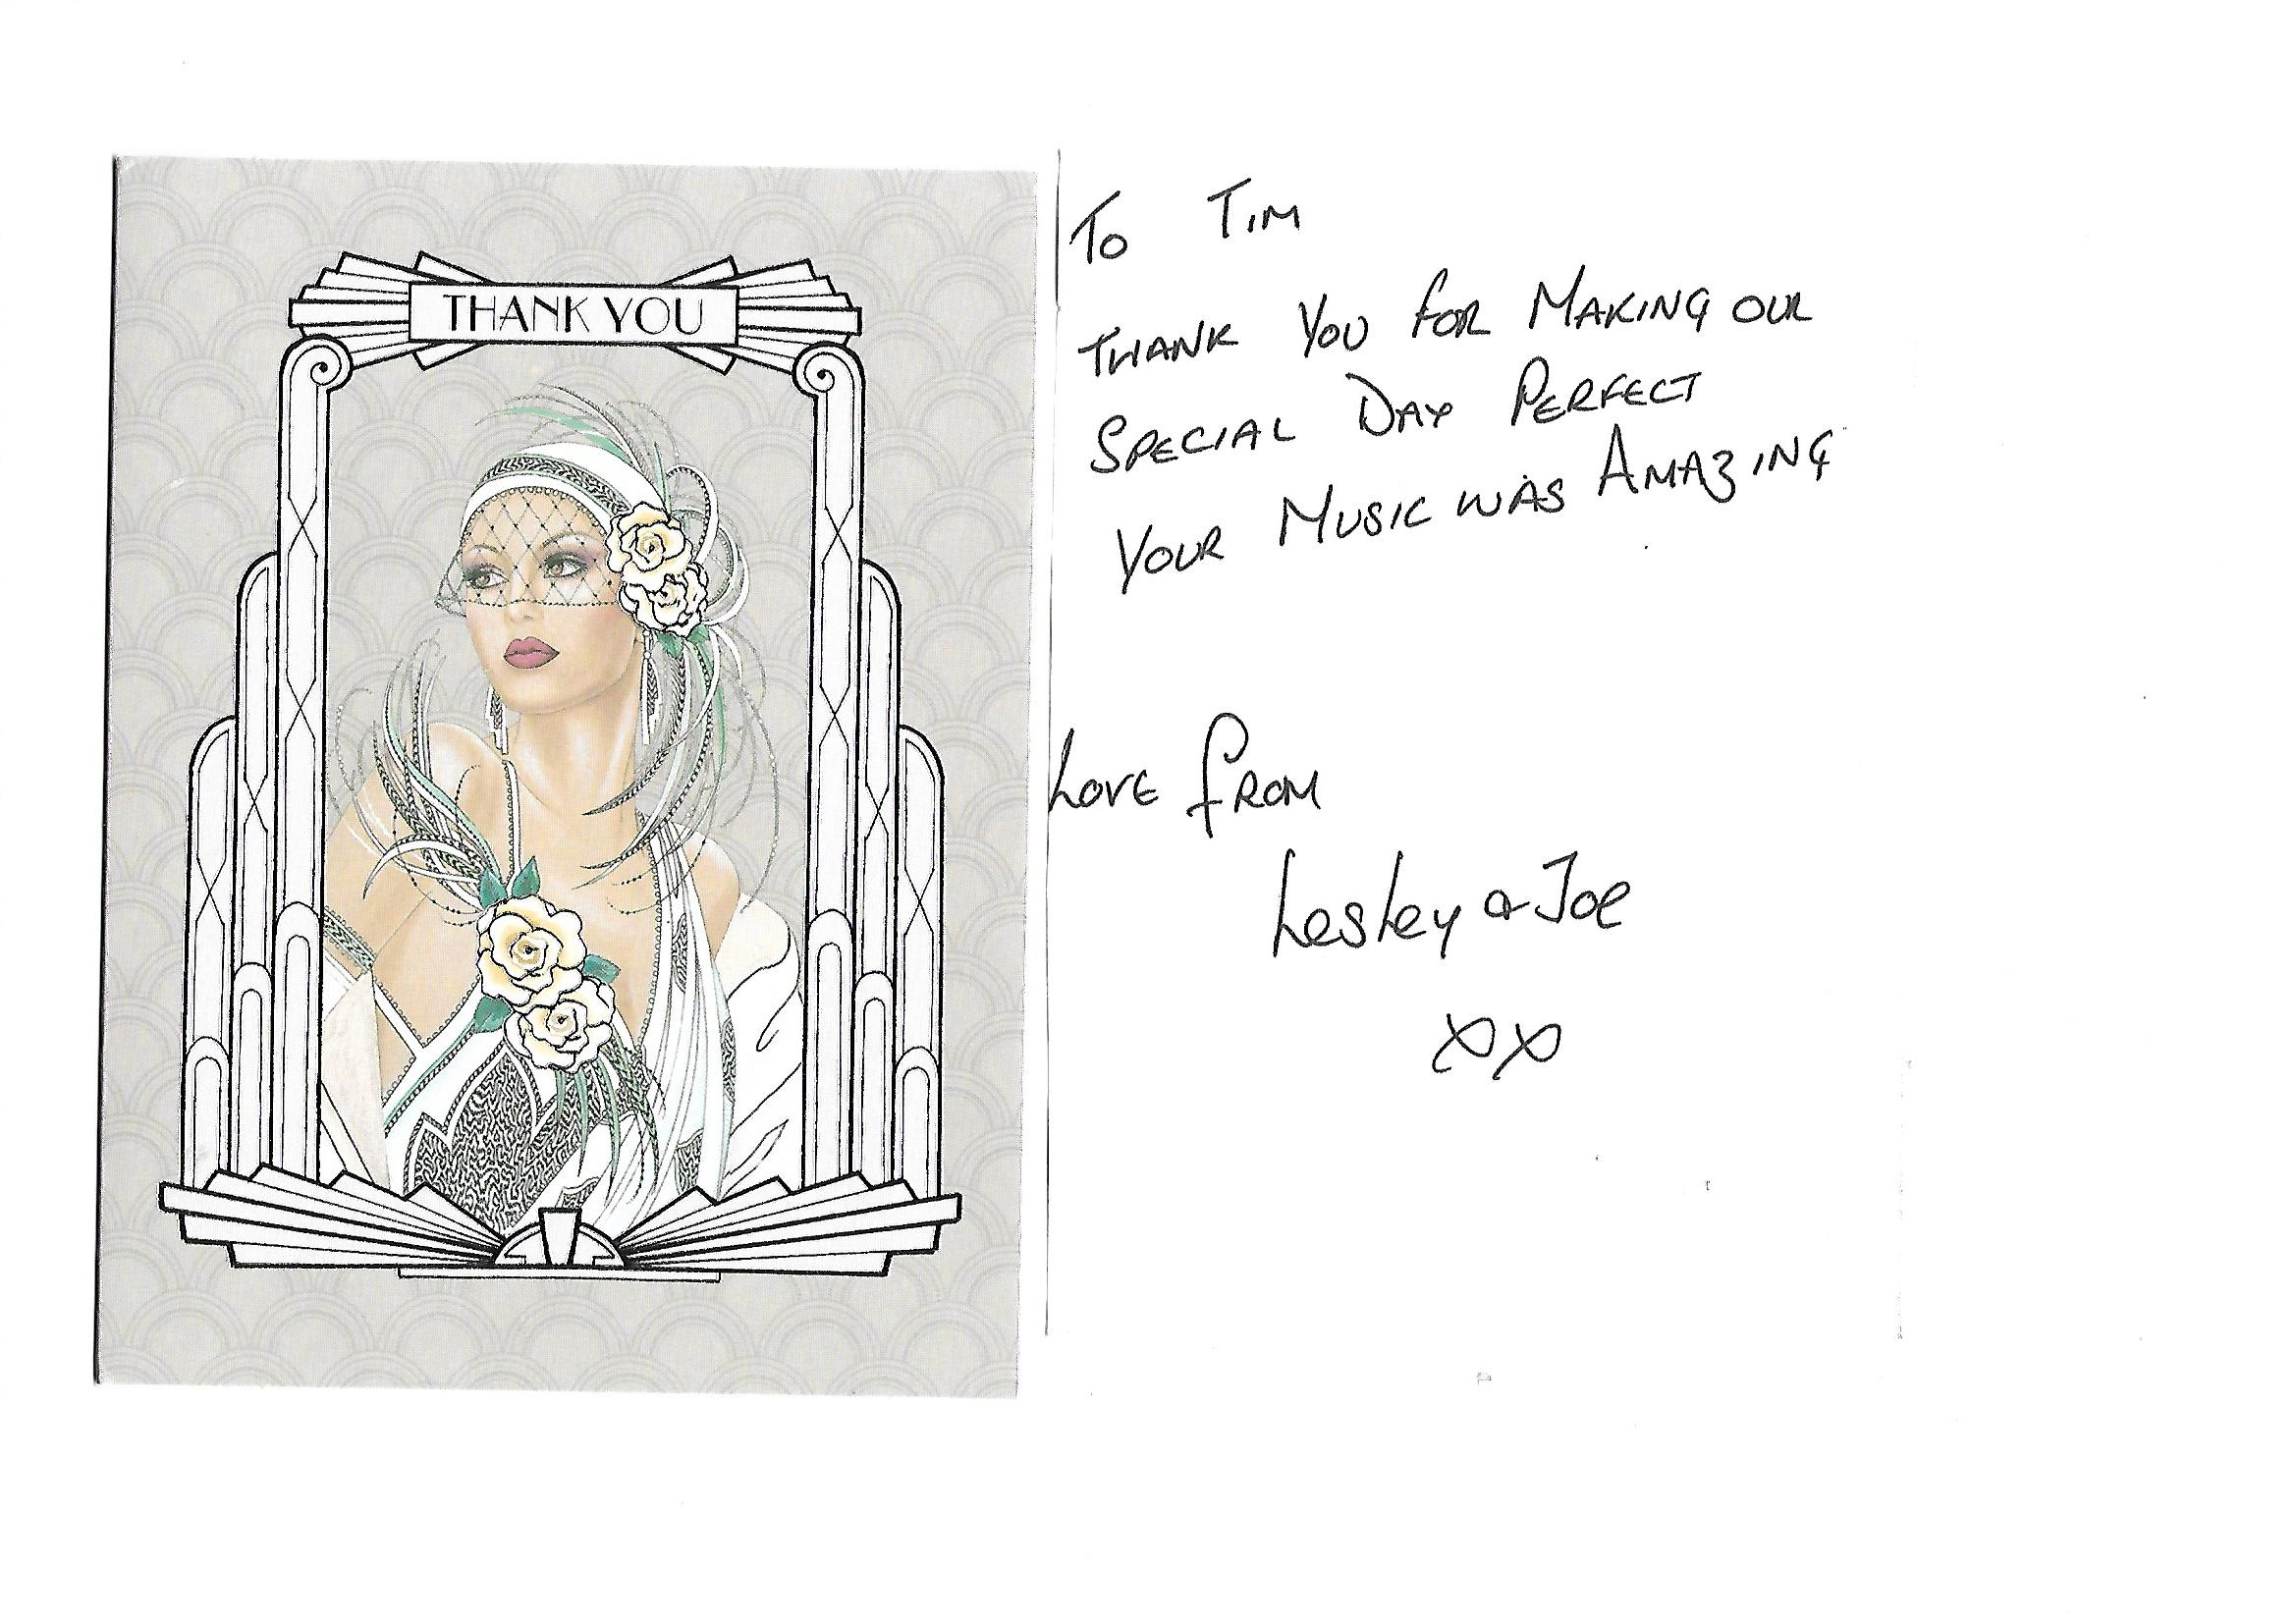 One of many thank-you cards from delighted brides